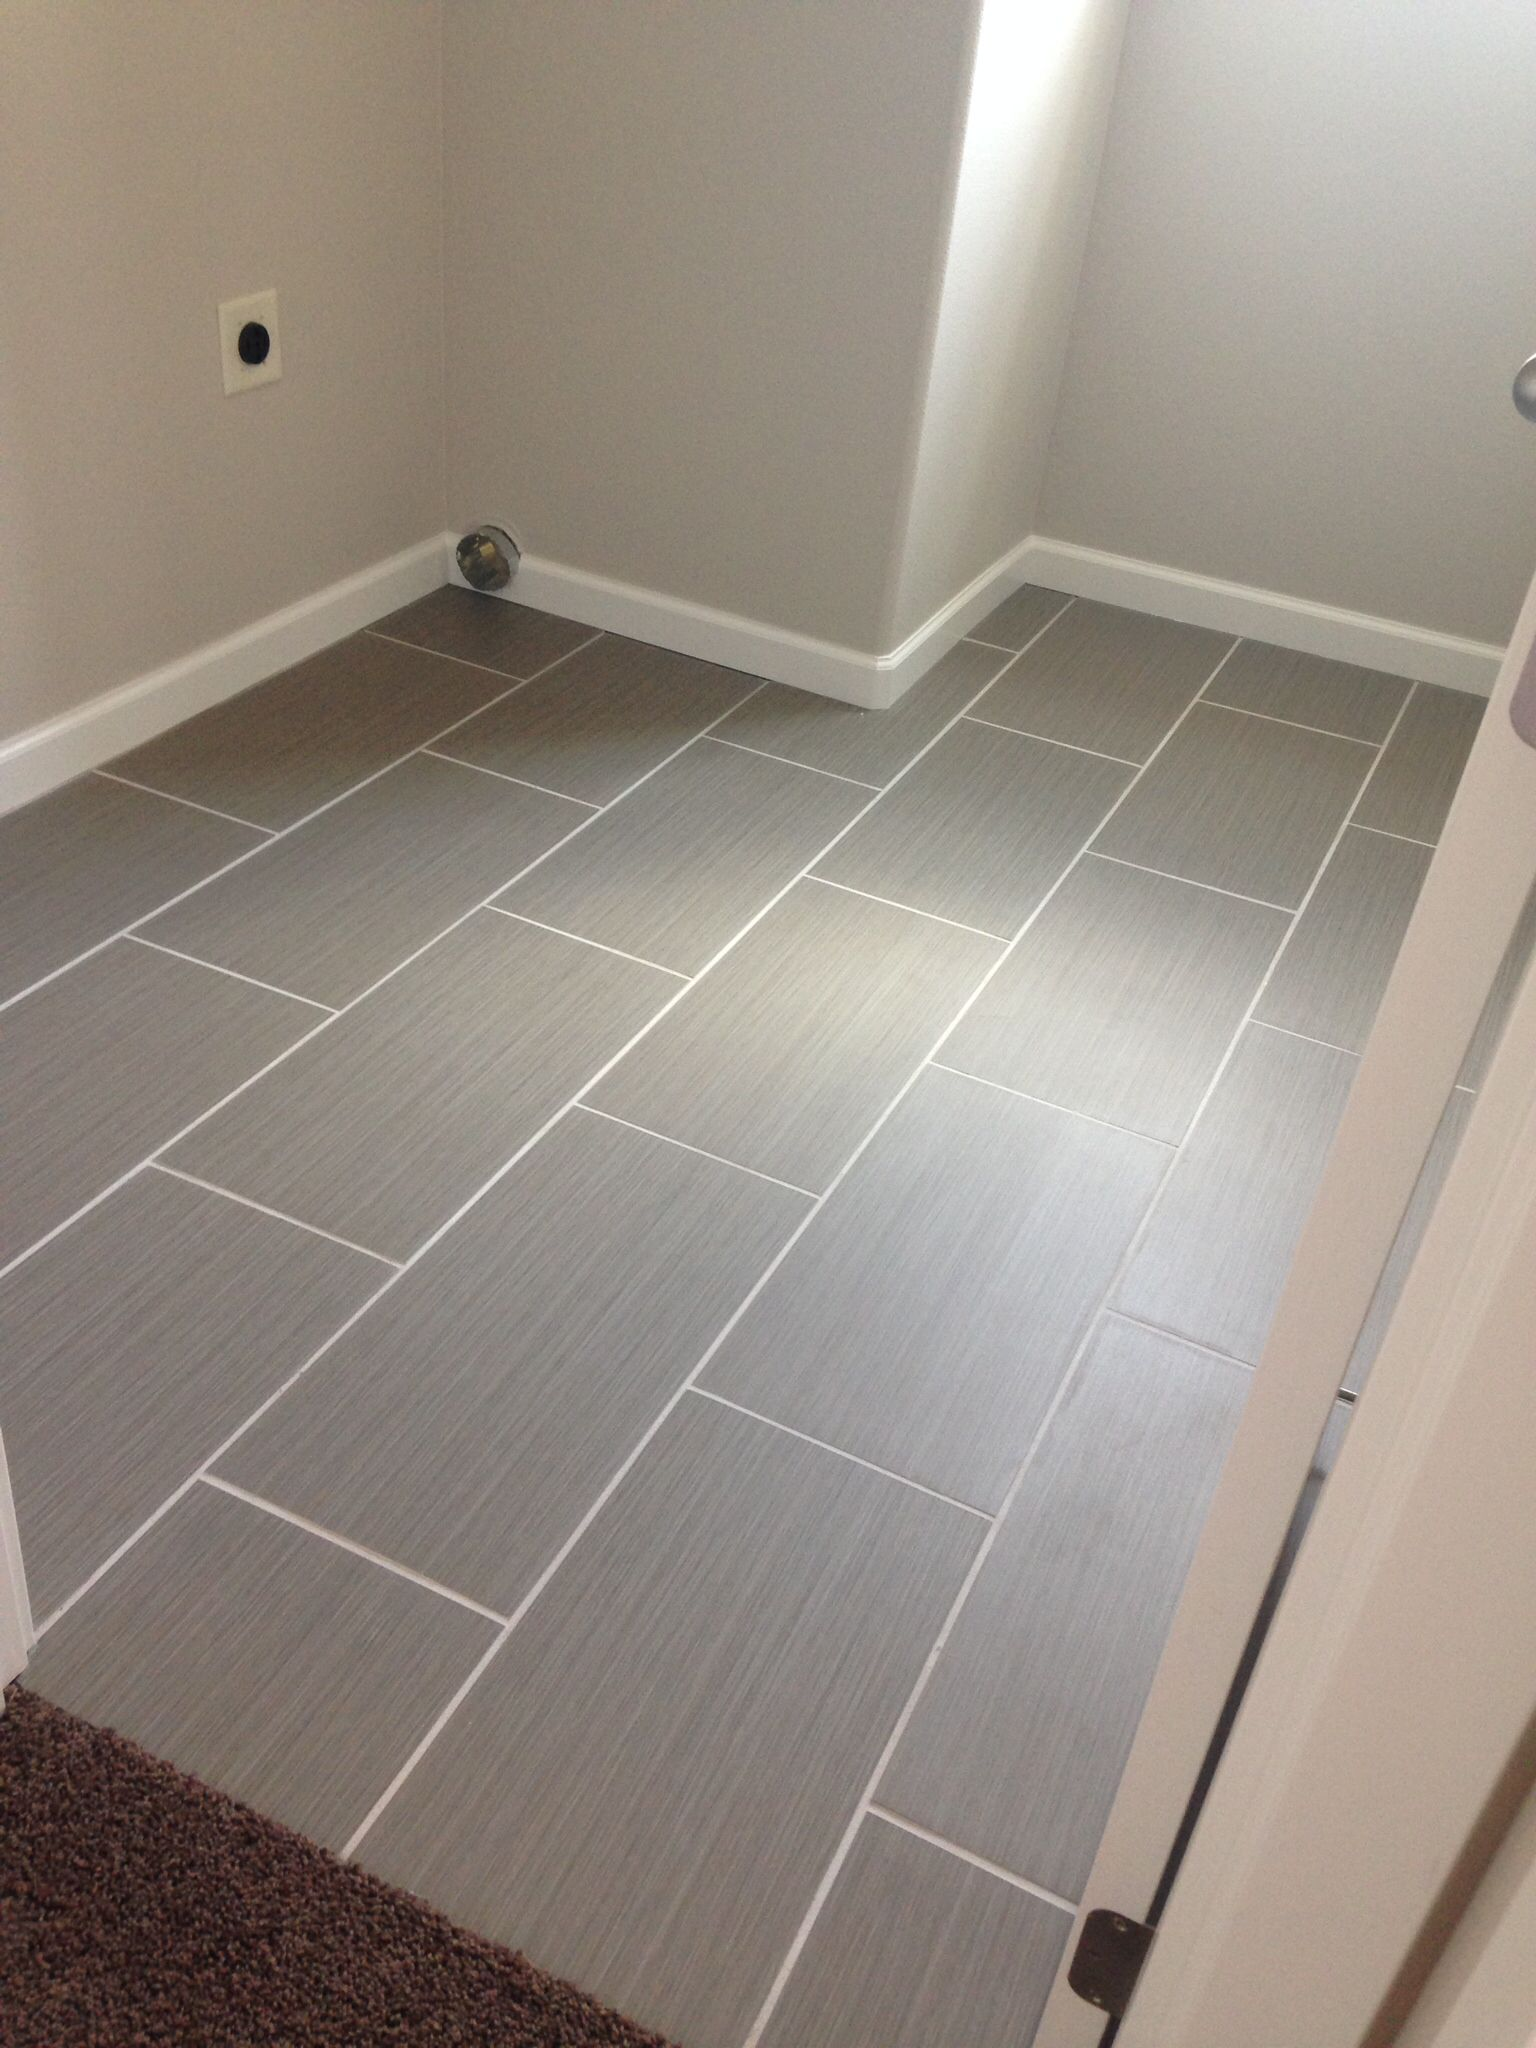 Gray Tile From Costco 721343 Neo Tile 1 39 2 39 Porcelain Tile 10 Sq Ft 5 Pc Mudroom Home Is